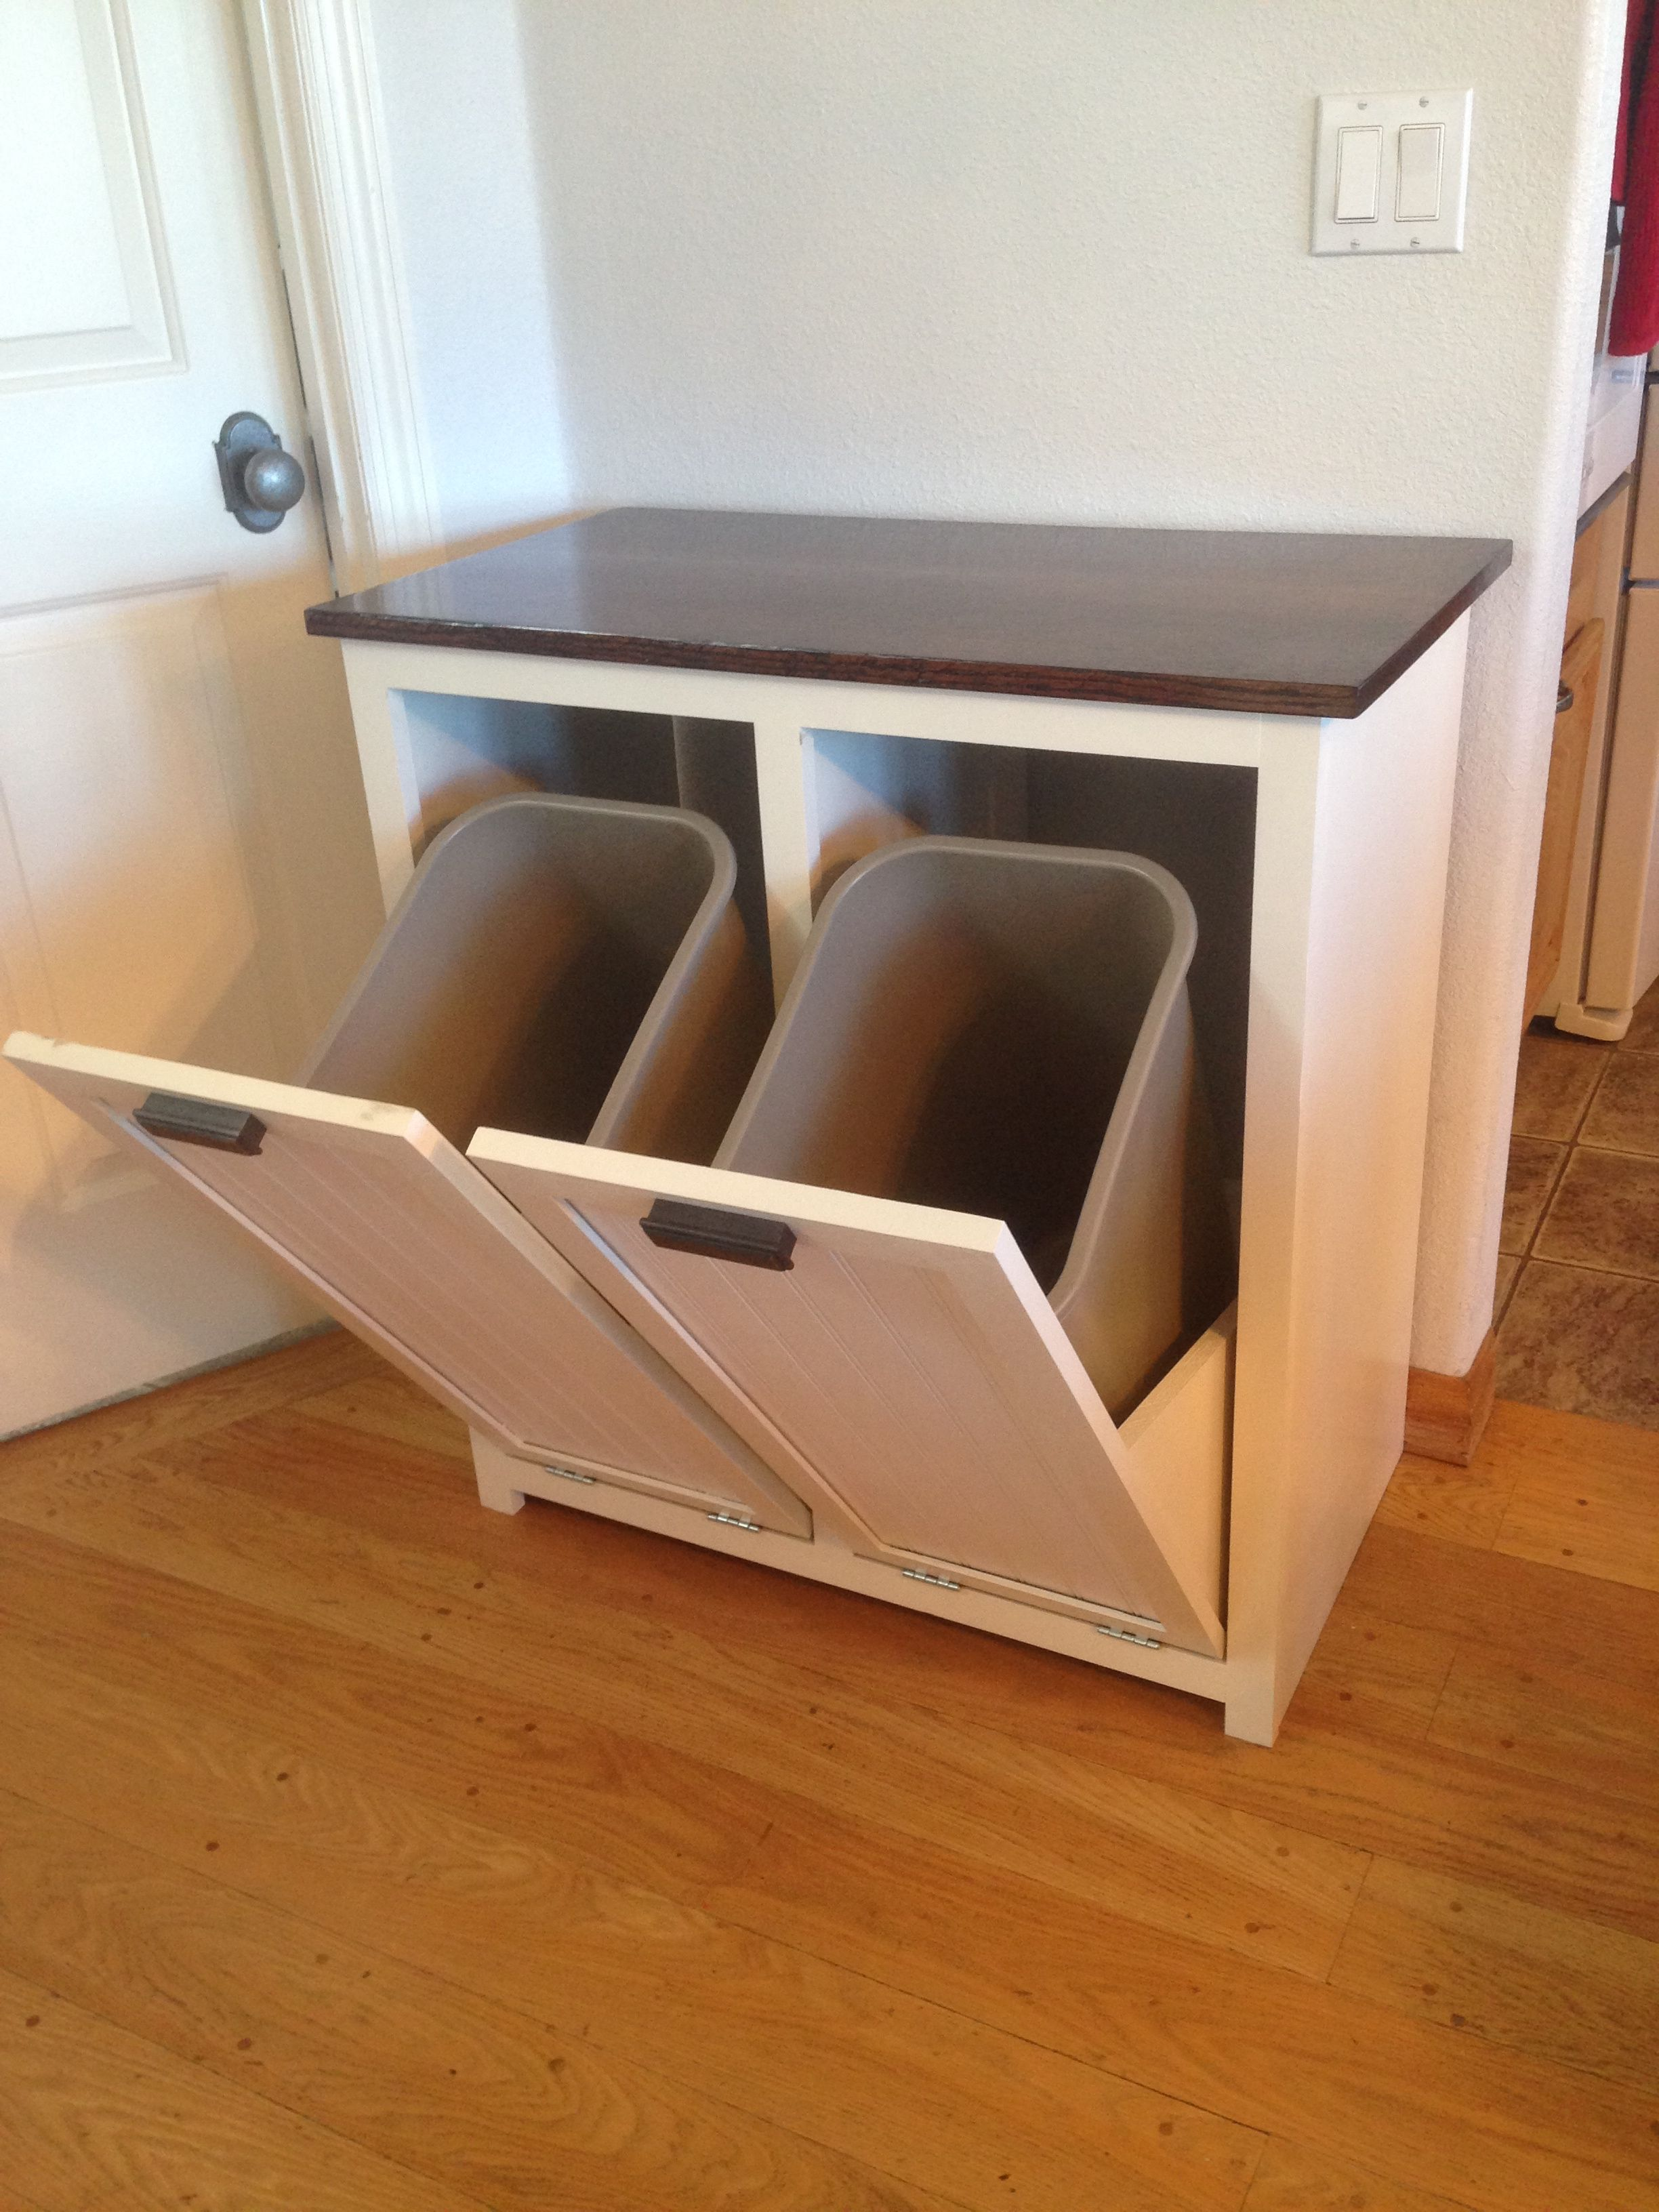 My Wife Asked Me To Build Something To Hide The Trash And Recycling Cans So That We Could Pretend That Diy Home Decor Projects Trash Can Cabinet Diy Furniture